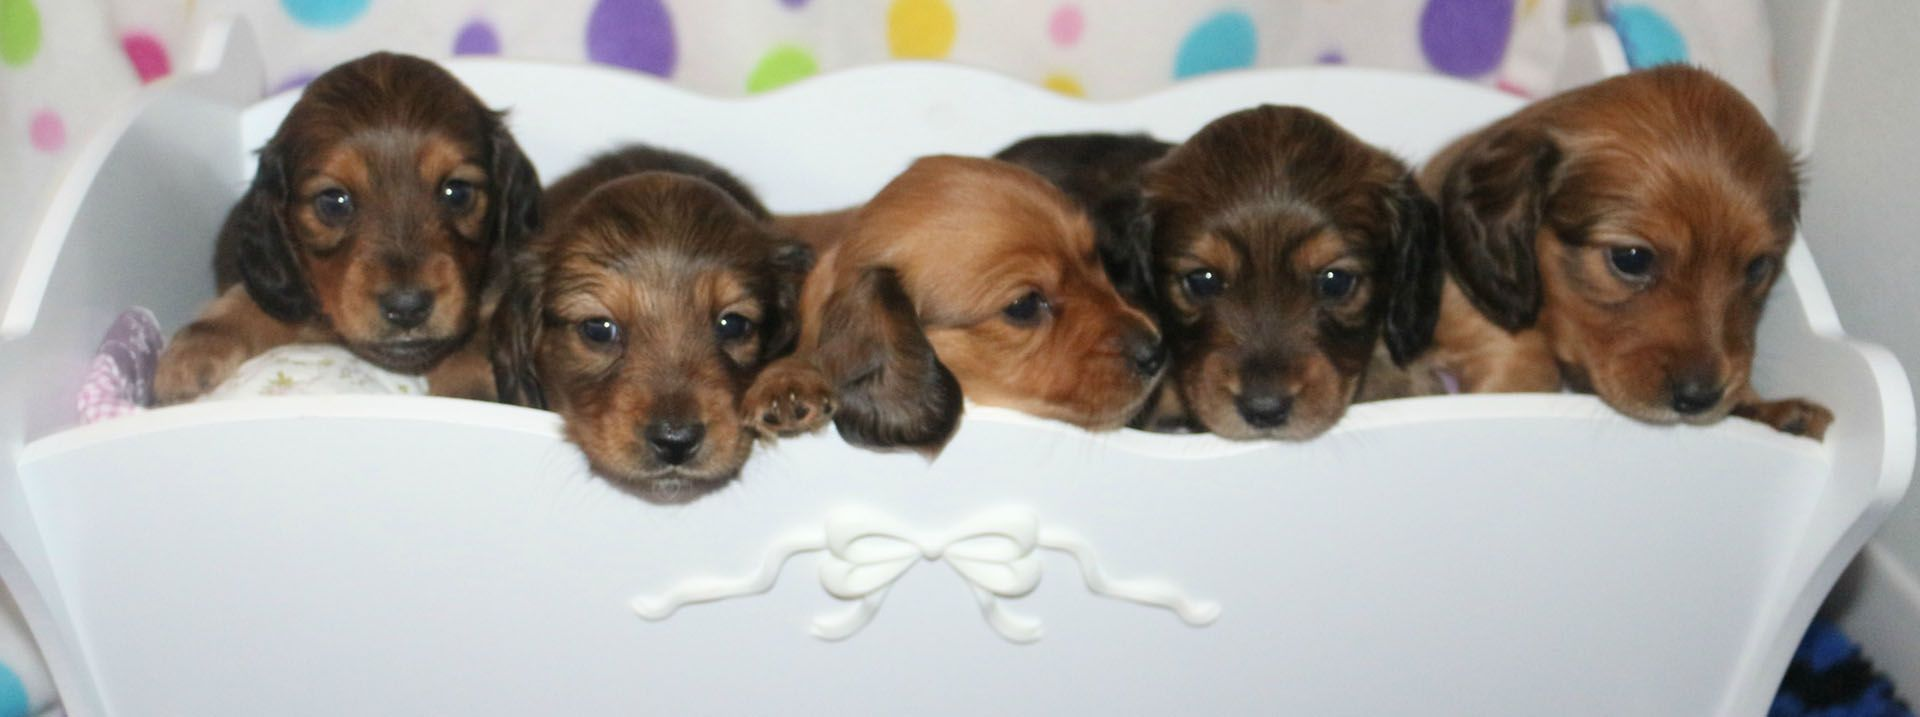 Available Long Haired Dachshund Puppies For Sale in Maine